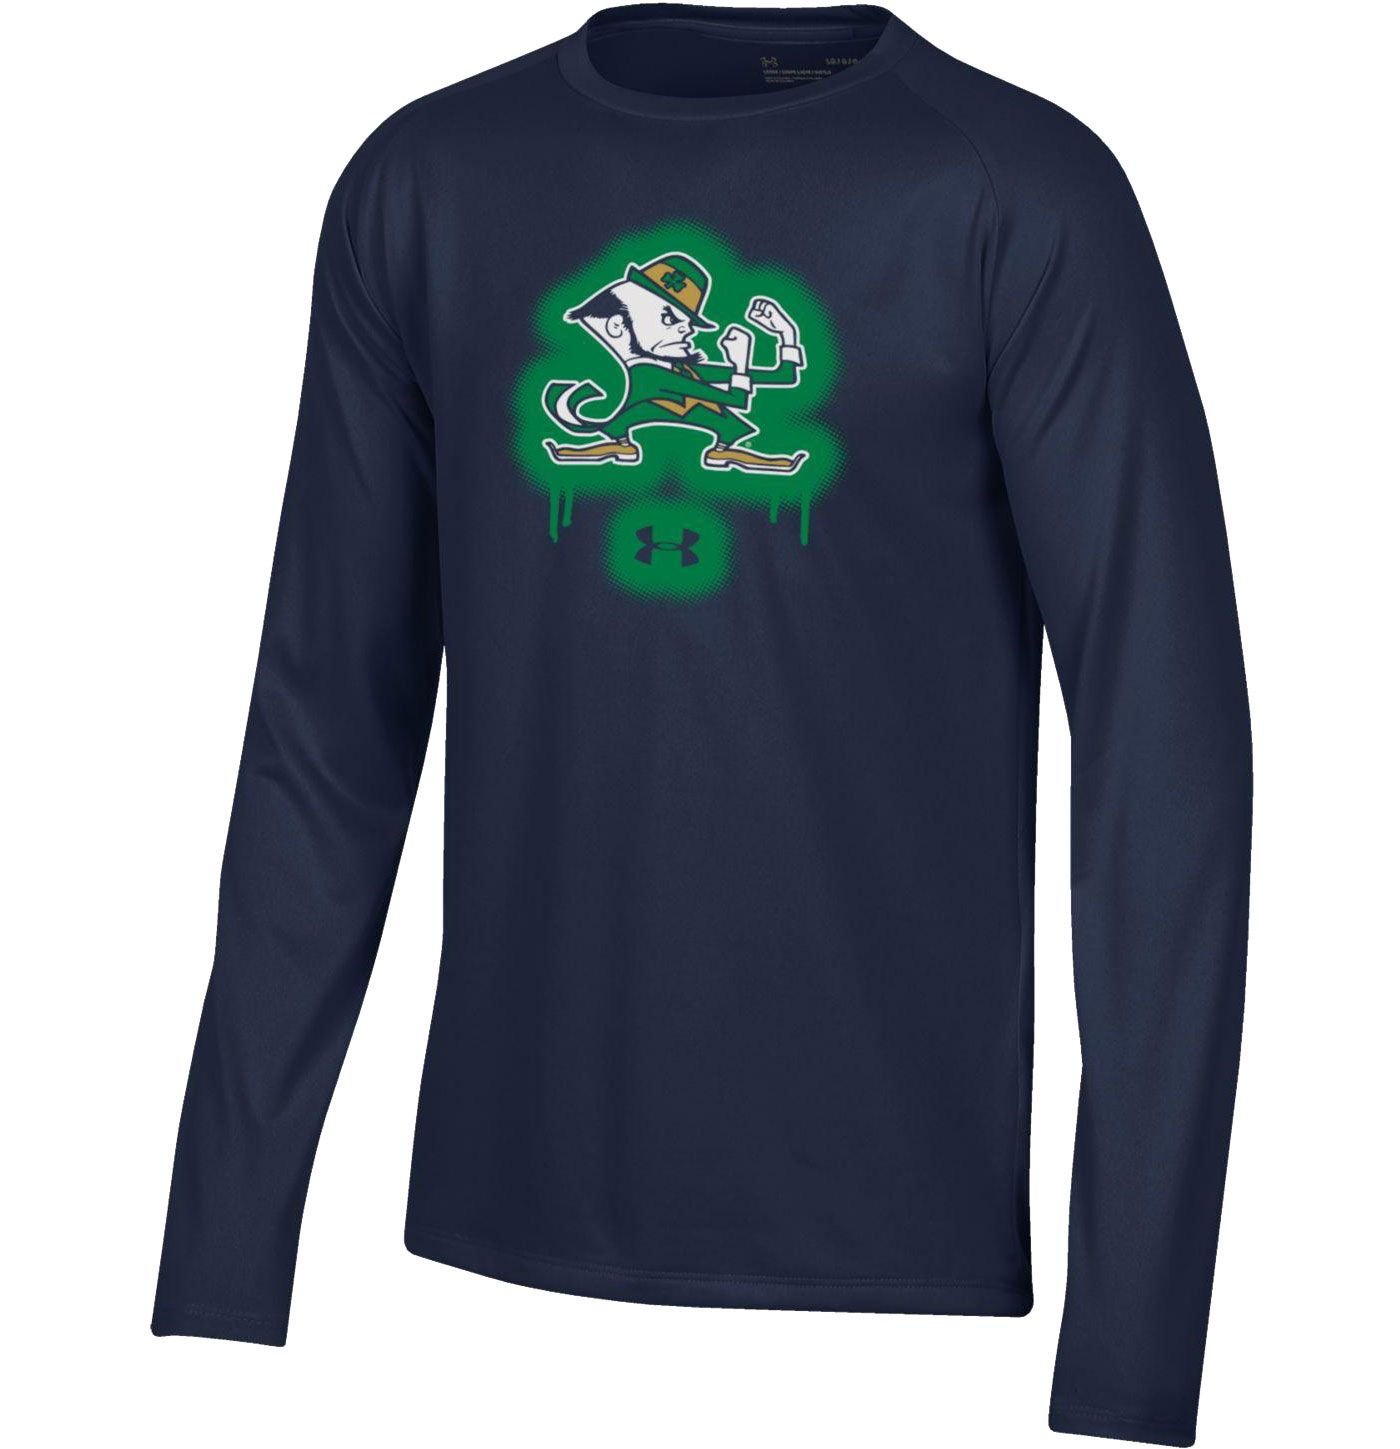 Under Armour Youth Notre Dame Fighting Irish Navy Tech Performance Long Sleeve T-Shirt